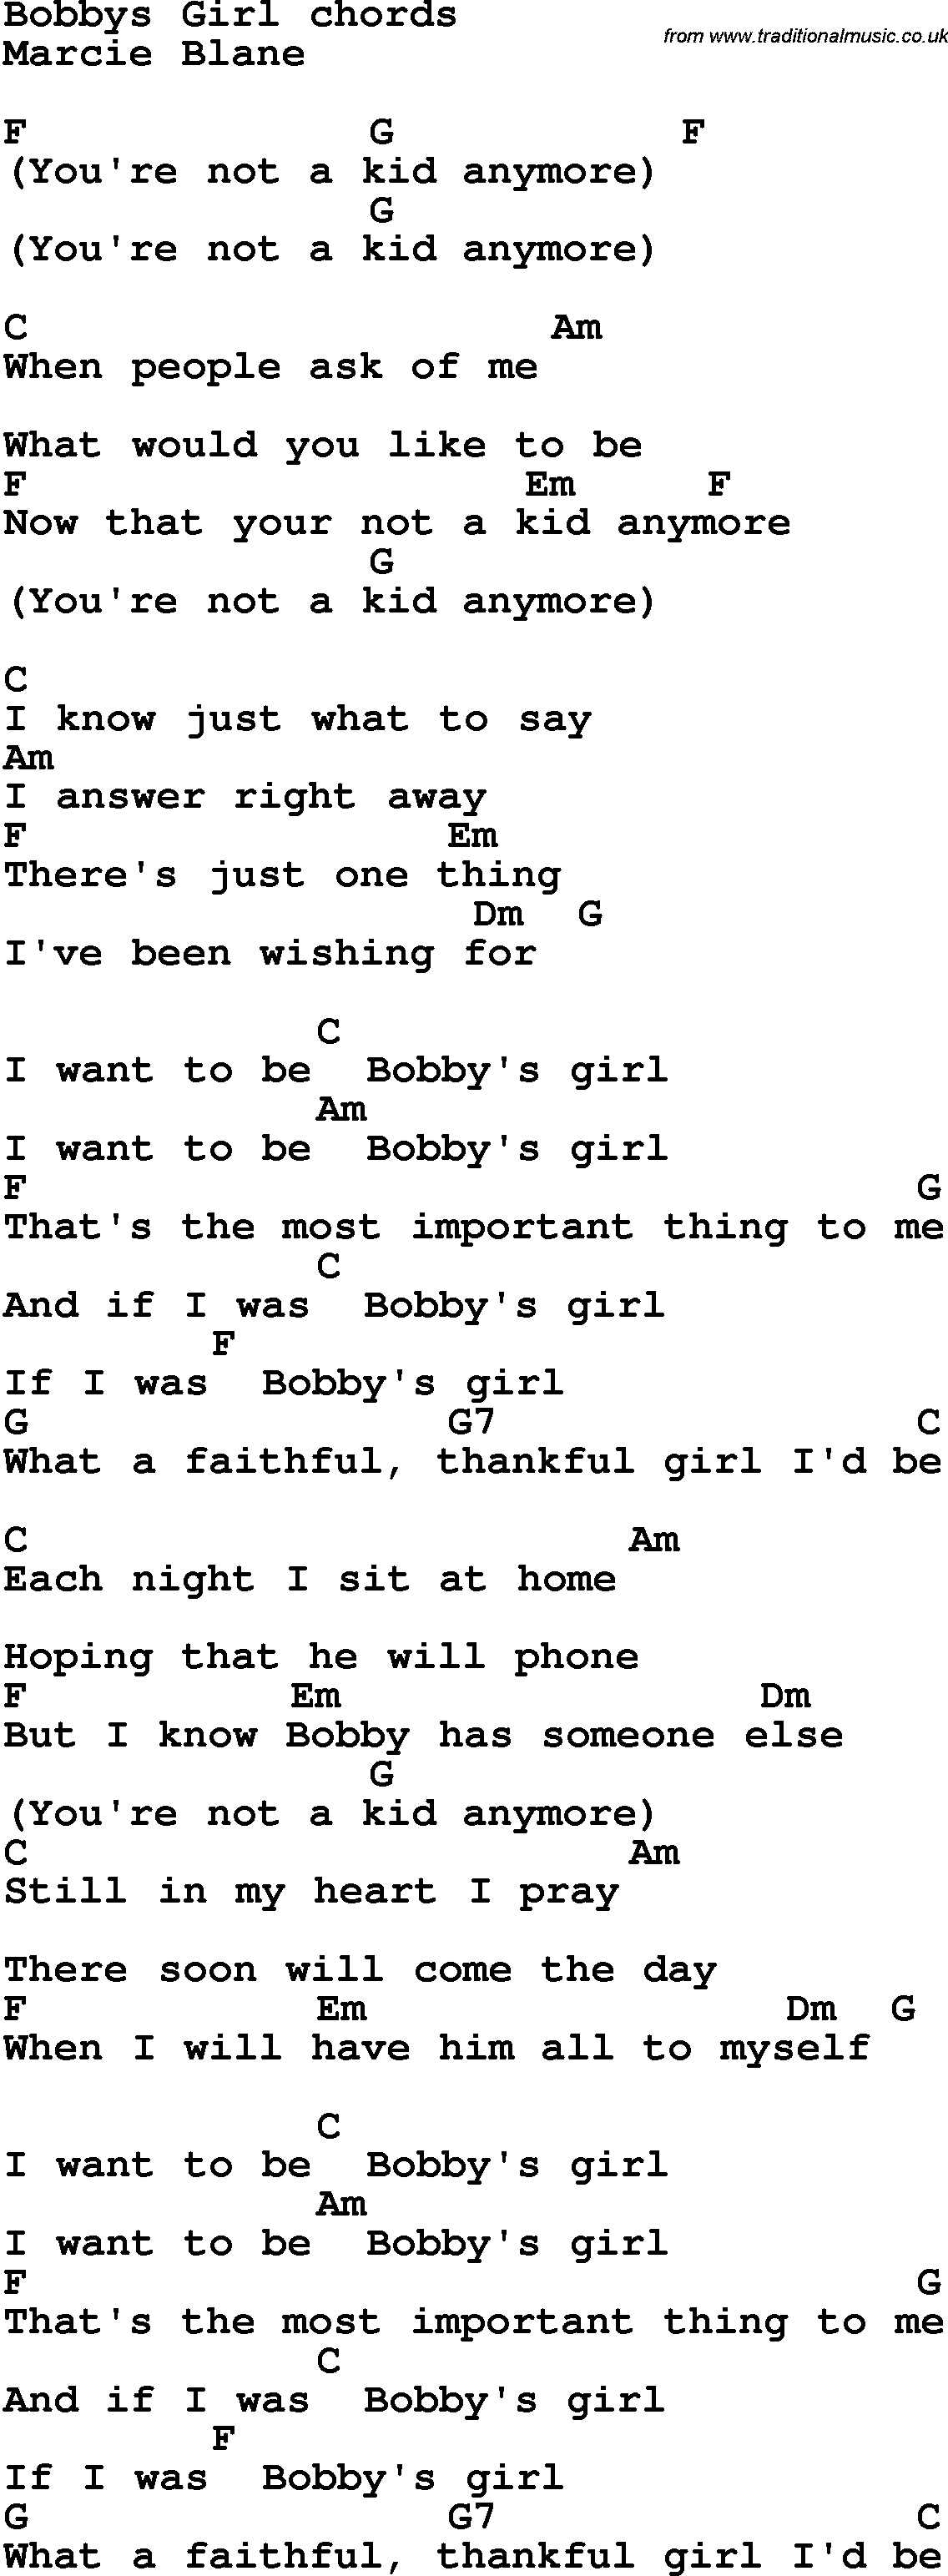 Lovely guitar chords for picture by kid rock edinburghensemble song lyrics with guitar chords for bobby s girl hexwebz Images